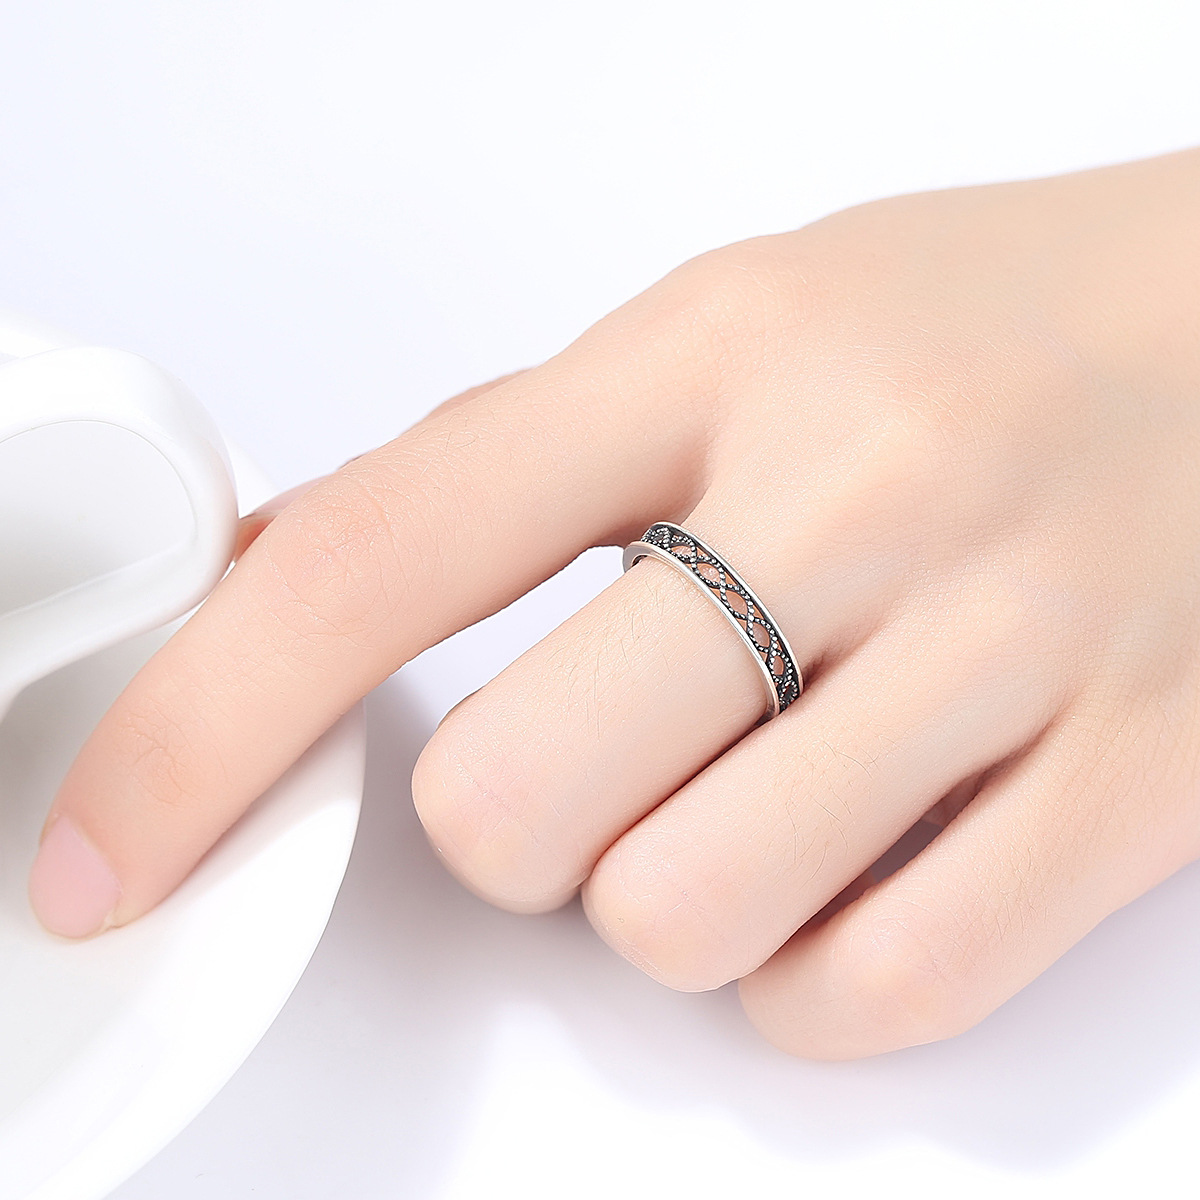 GOMAYA 100 925 Sterling Silver Personality retro Finger Rings for Women Adjustable Size Valentine Gift Jewelry in Rings from Jewelry Accessories